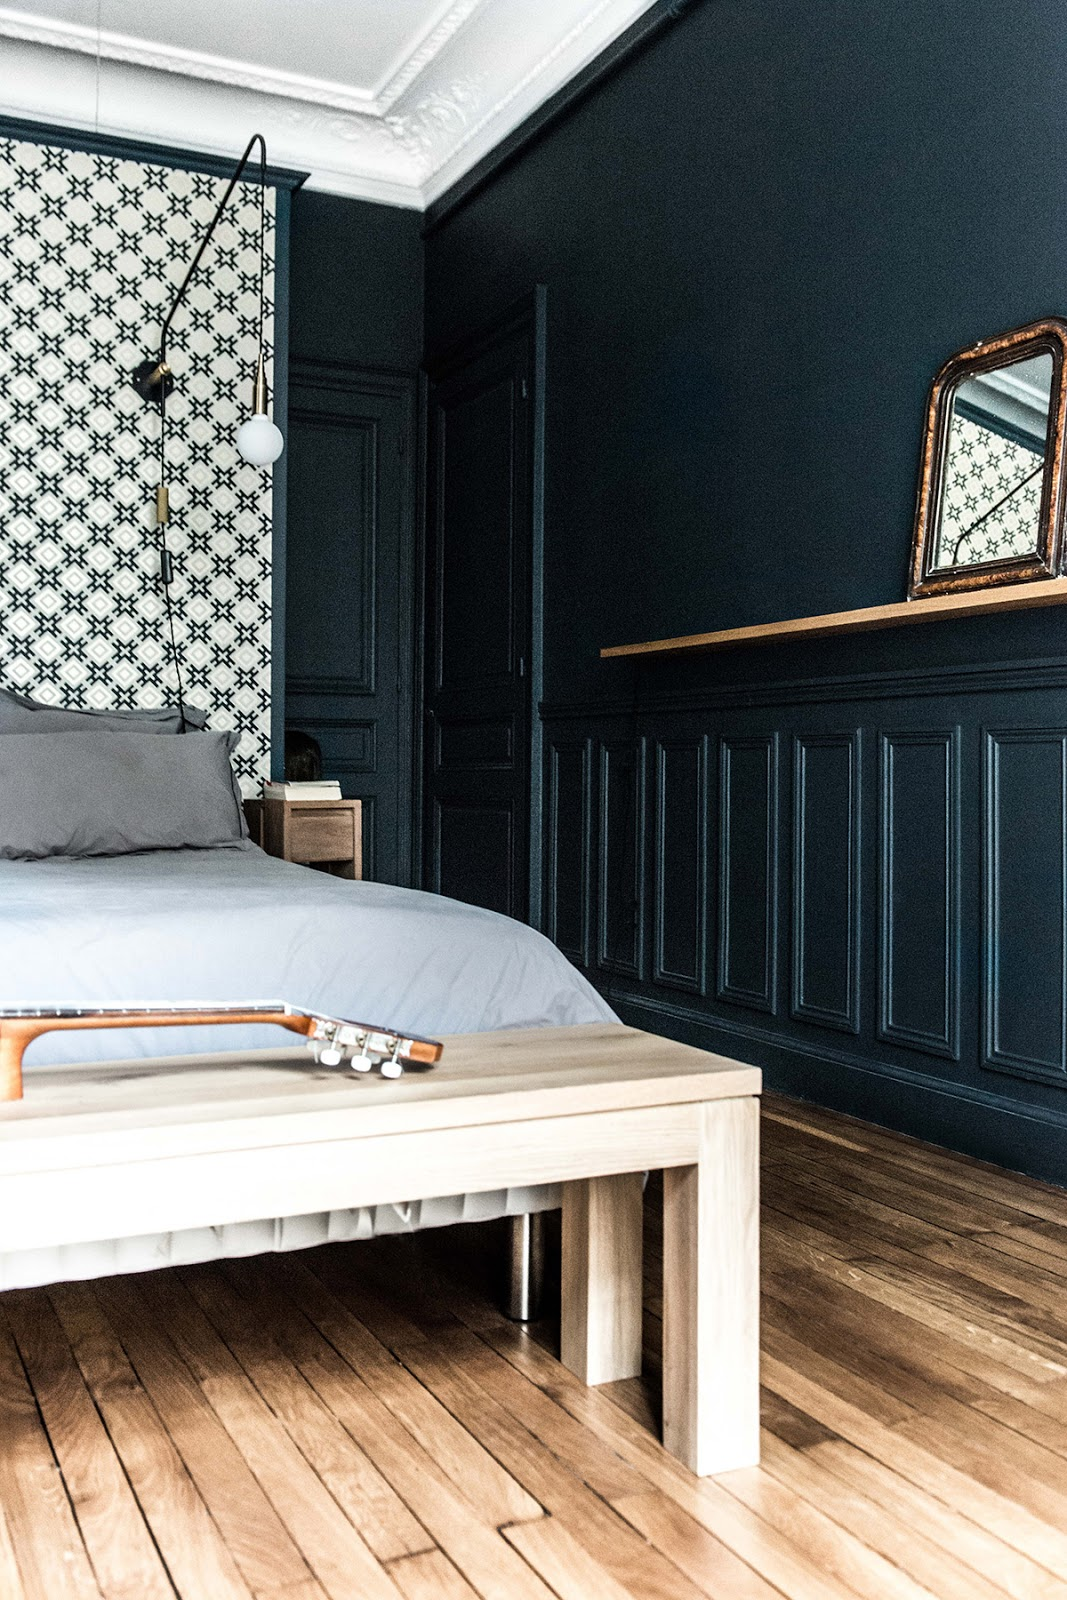 pattern bed headboard, bedroom with wood paneling